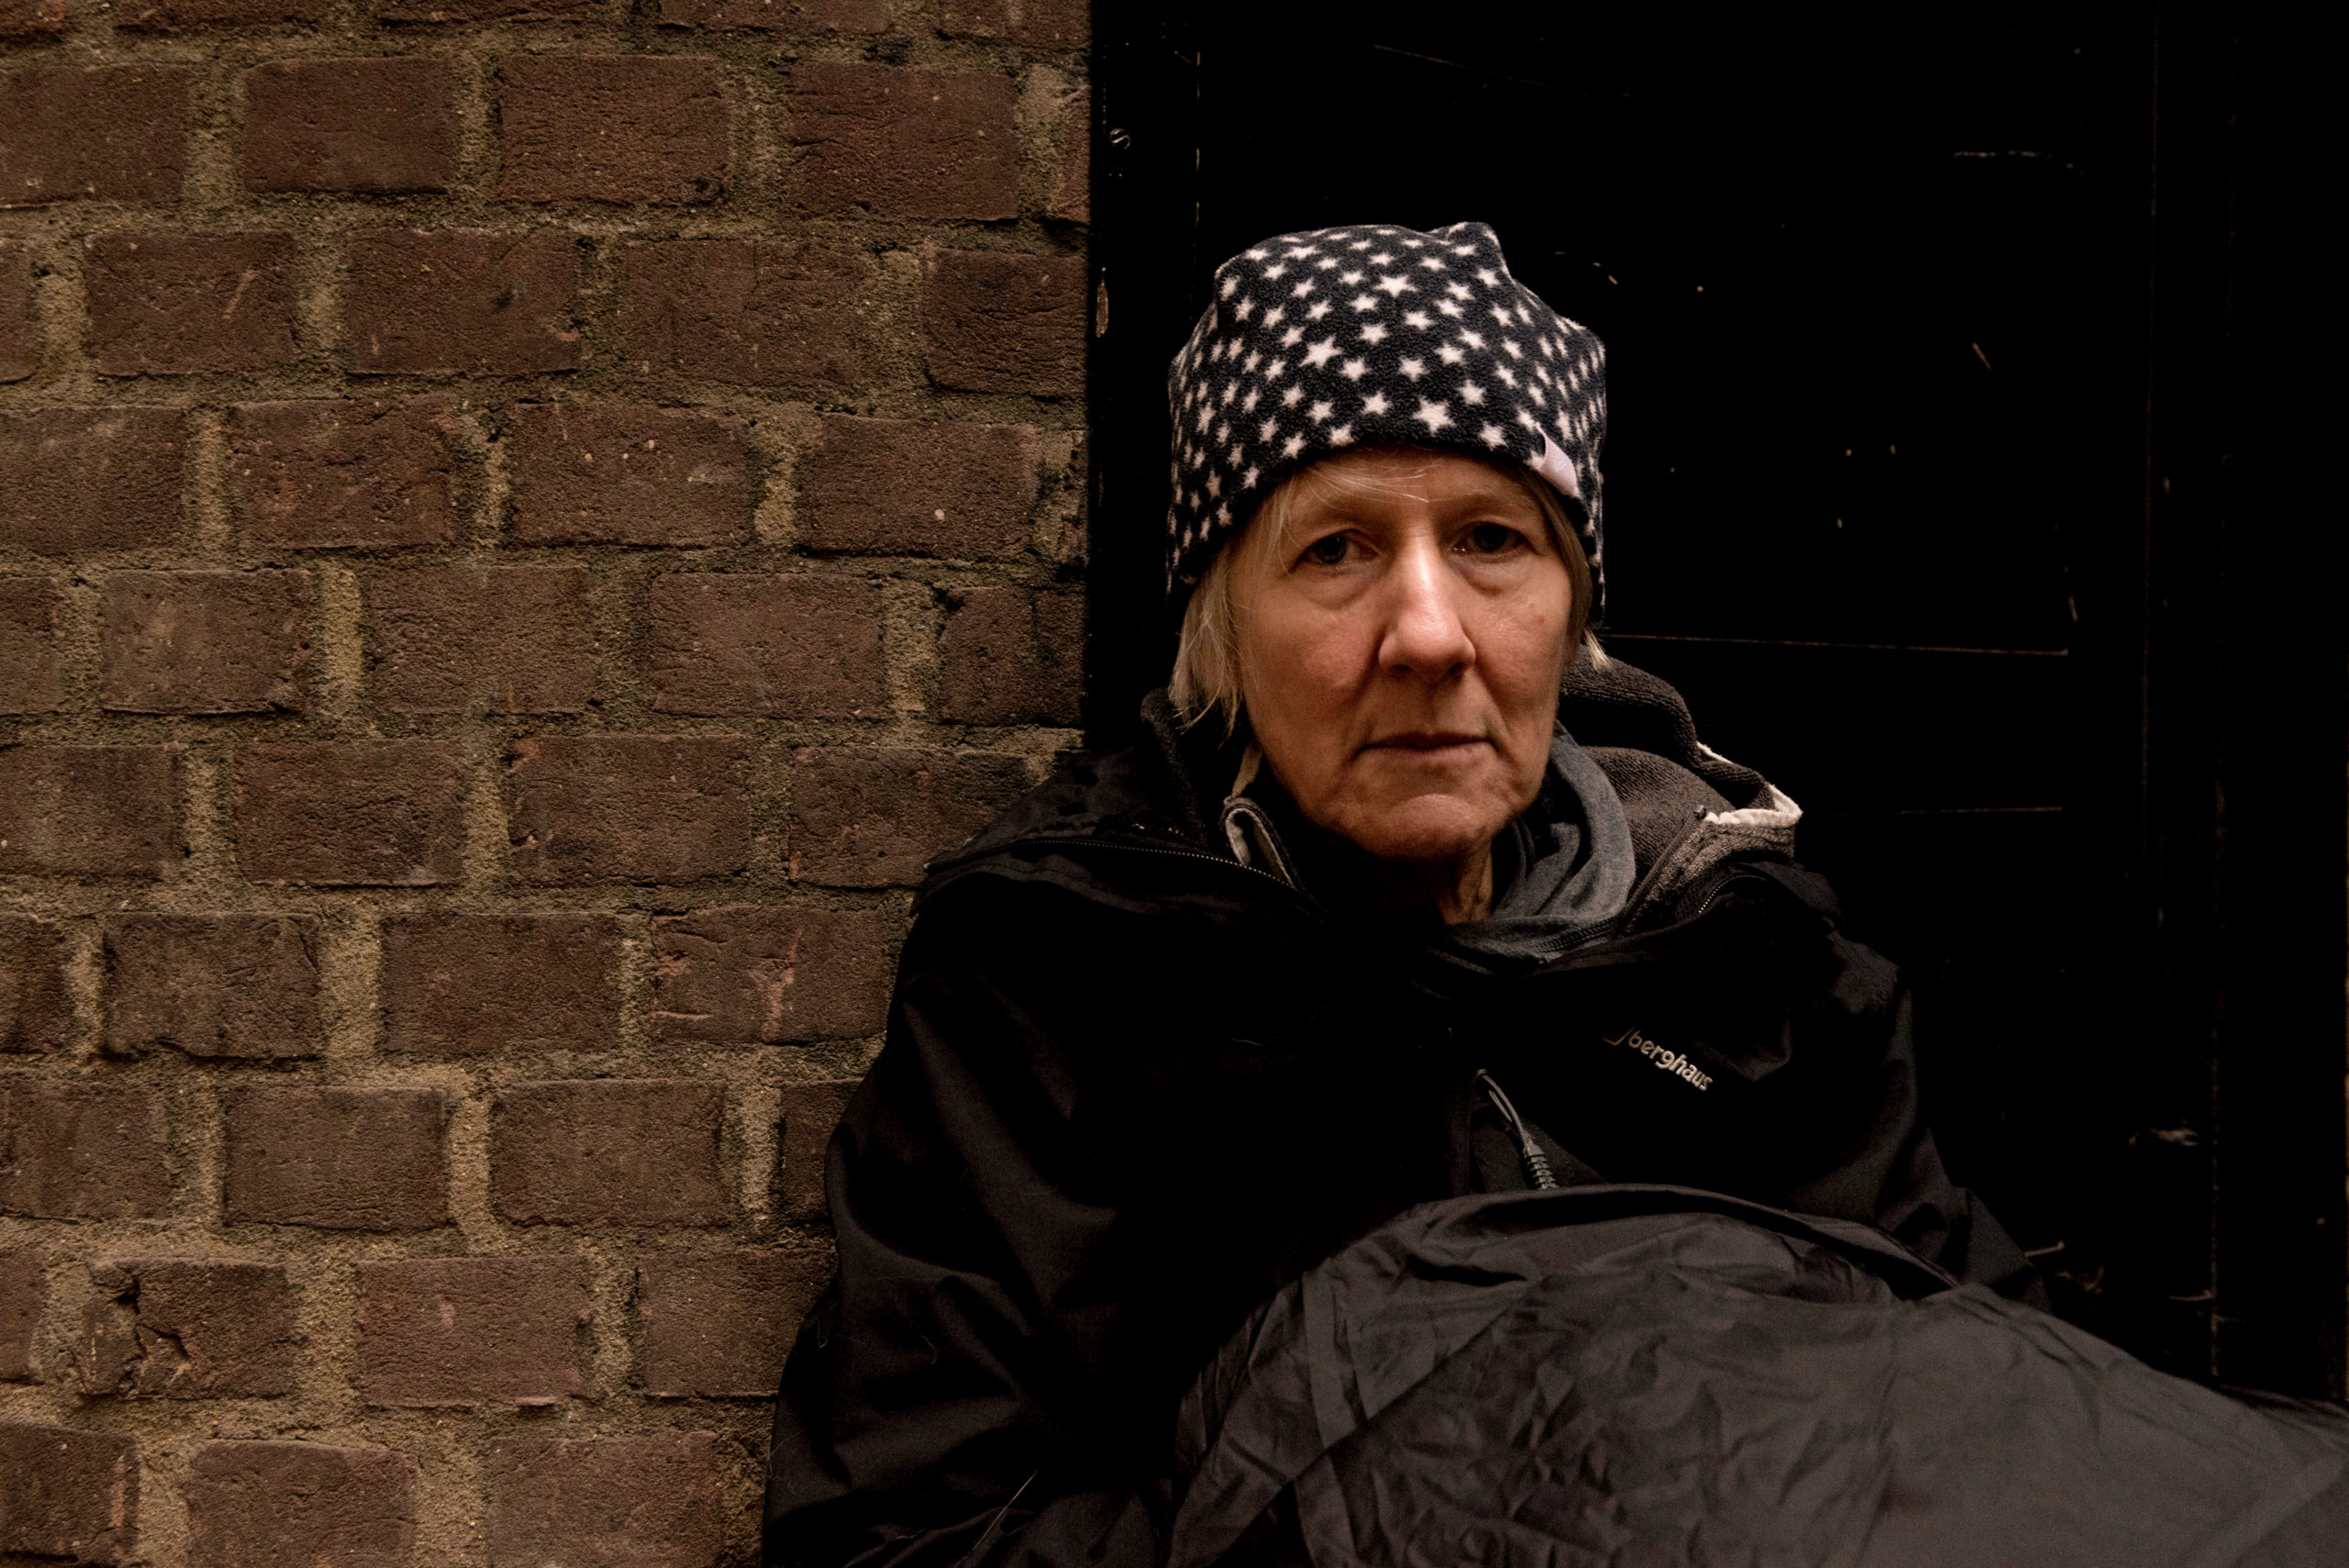 A woman sits on the floor next to a brick wall